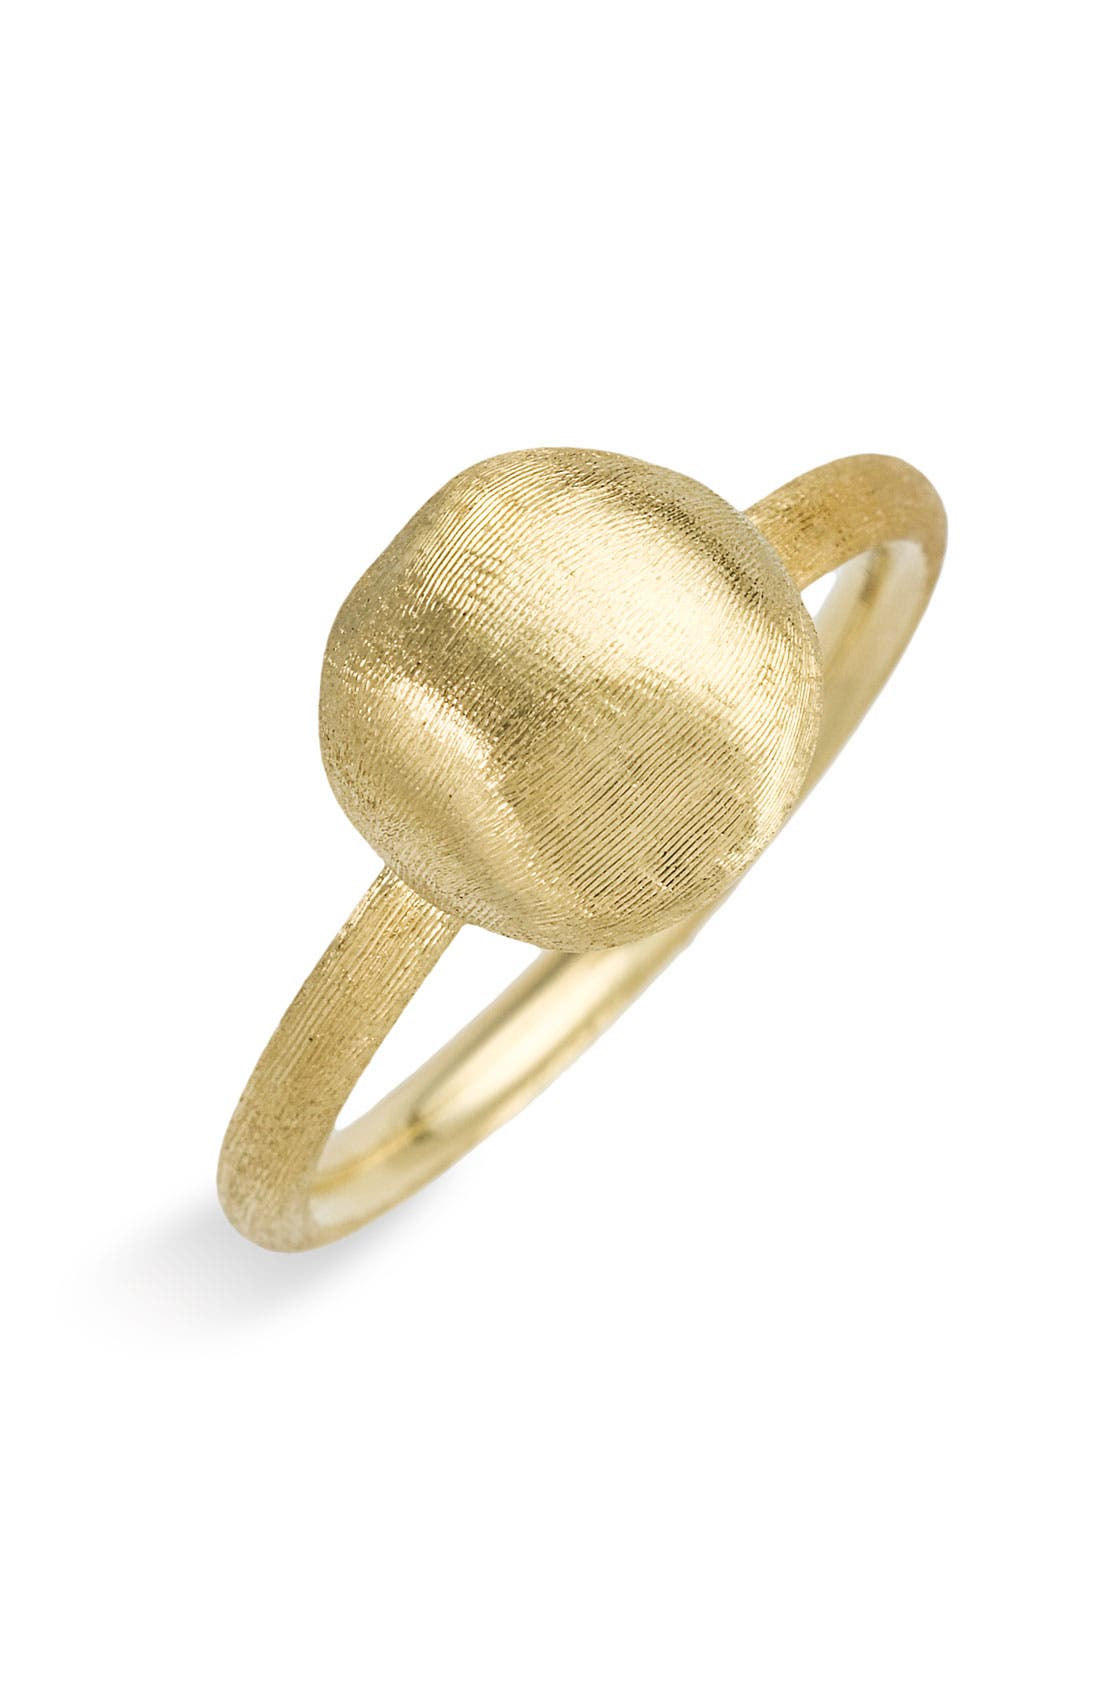 Alternate Image 1 Selected - Marco Bicego 'Africa Gold' Ball Ring